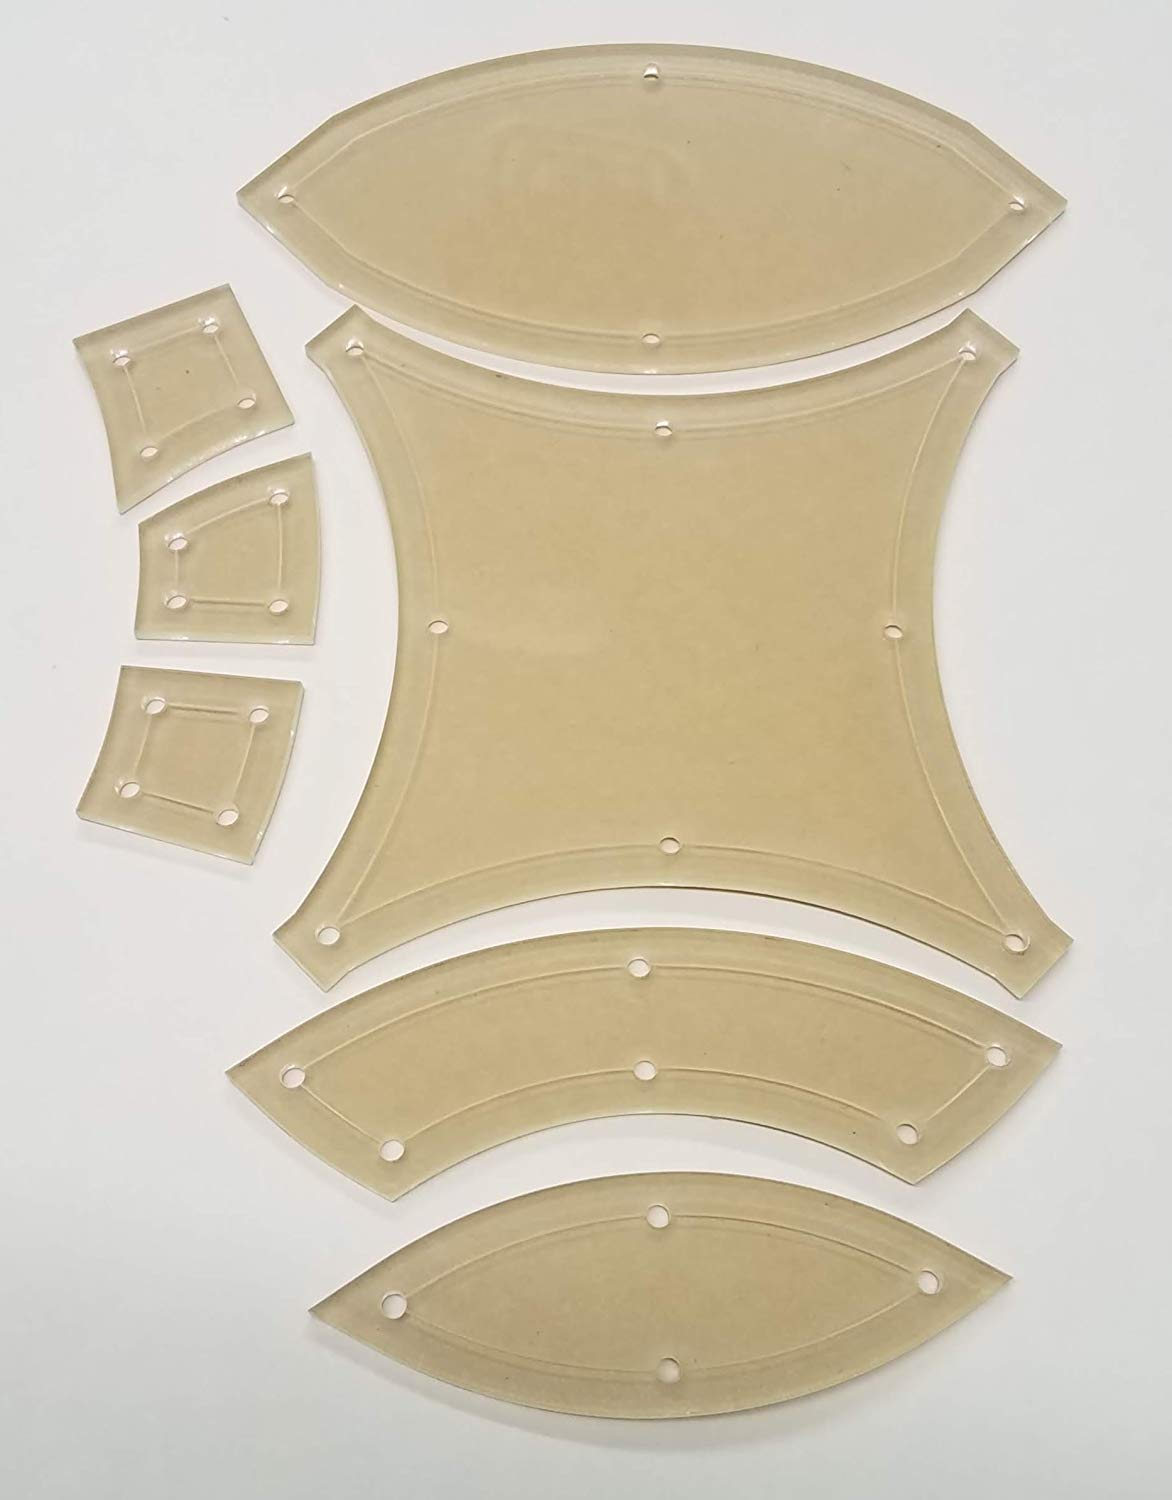 5'' Double Wedding Ring Acrylic Quilting Template Set, 1/4'' Seam Allowance - 7 Pieces - Tiny DWR by LaserThing